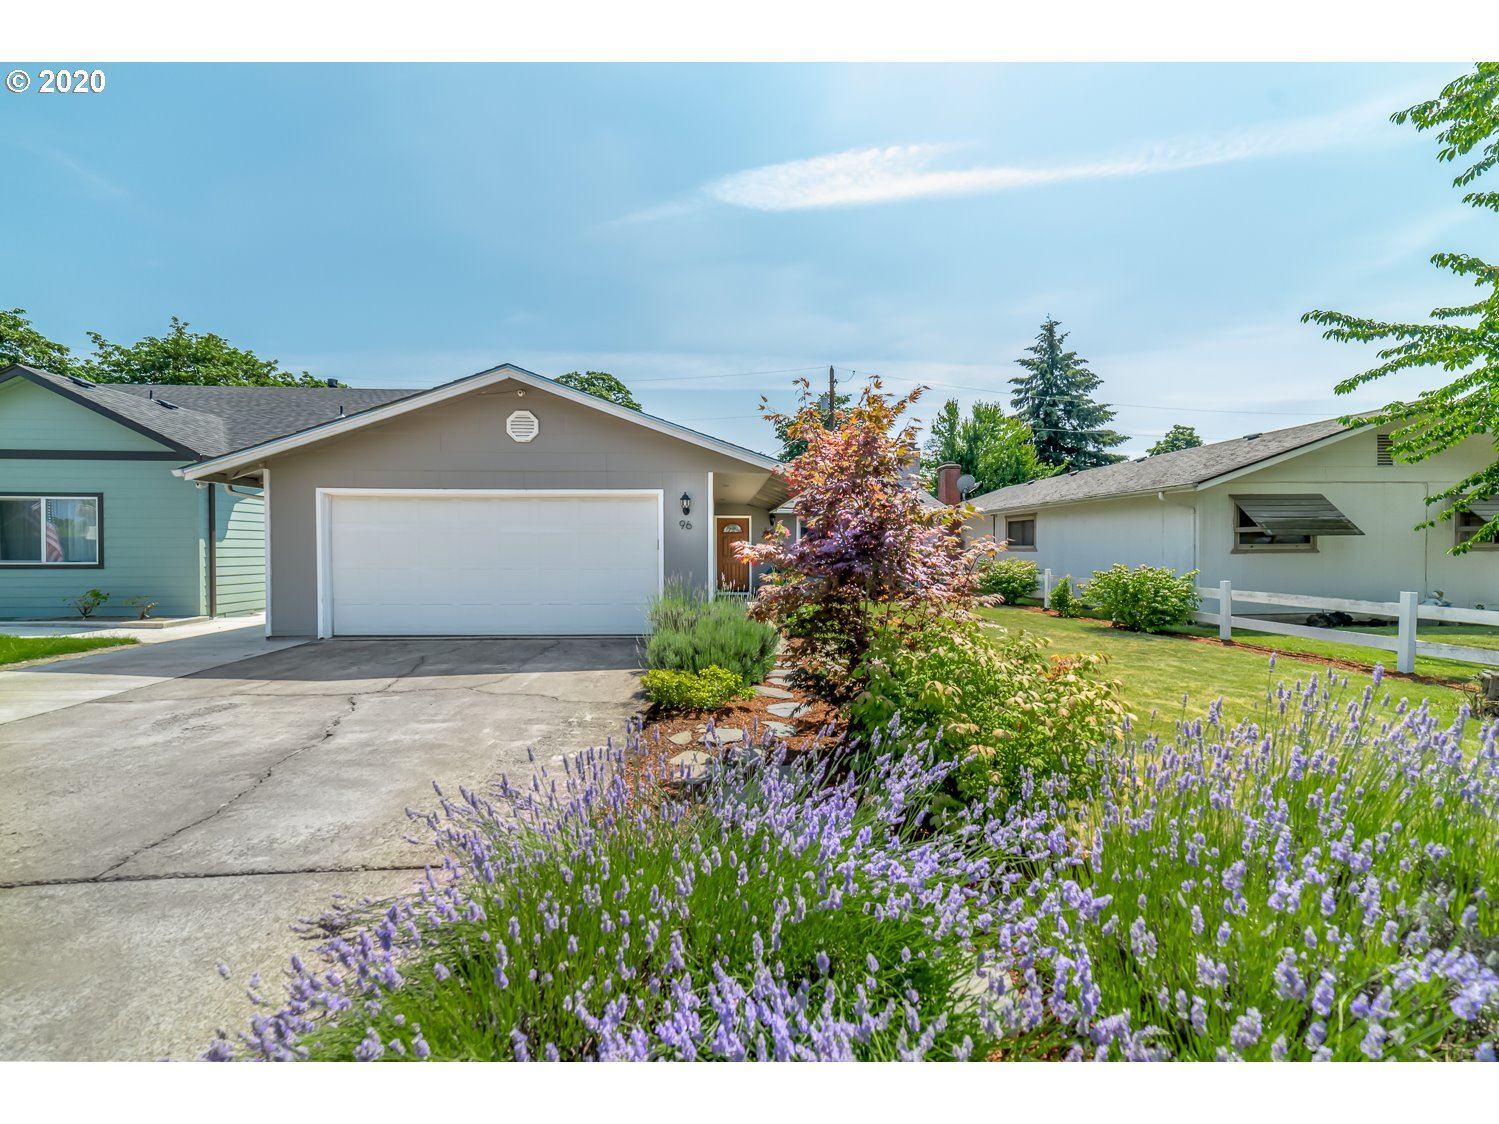 Photo for 96 N 10TH ST, Creswell, OR 97426 (MLS # 20296159)